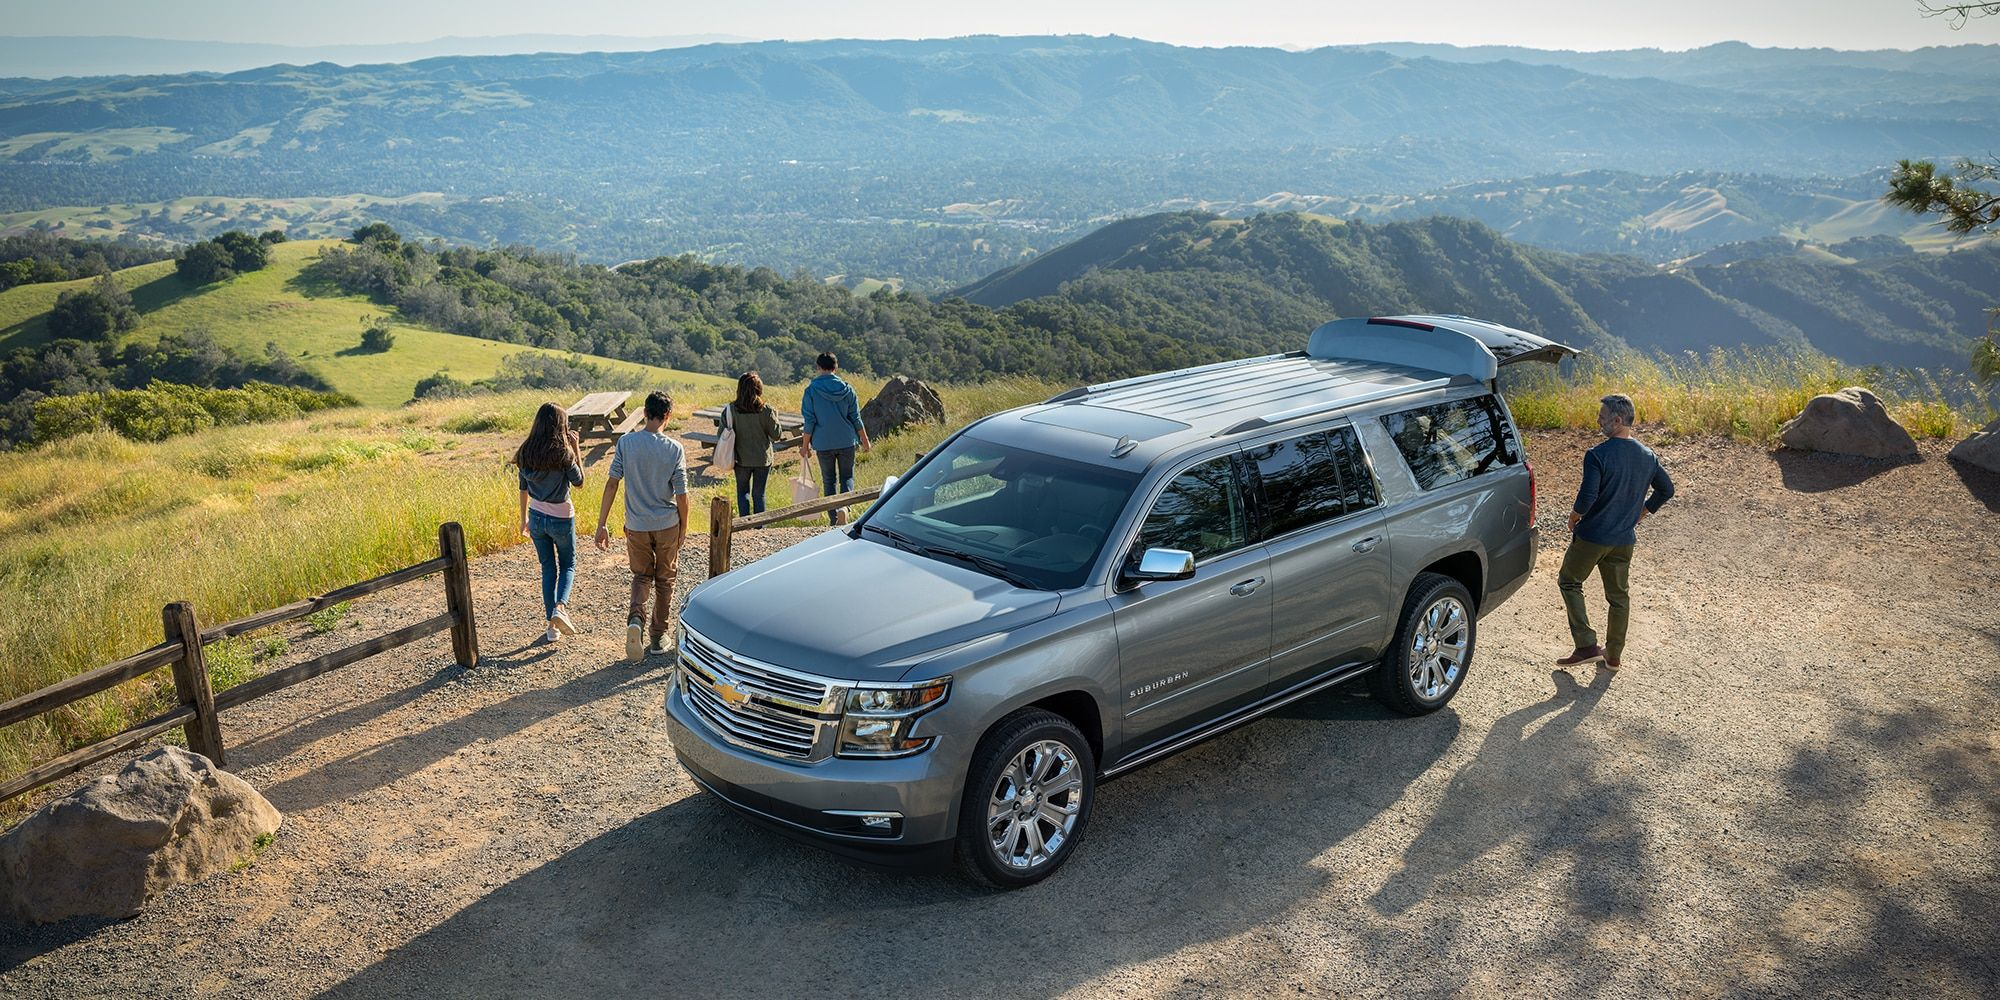 2019 Suburban Large Suv Avail As 7 8 Or 9 Seater Suv